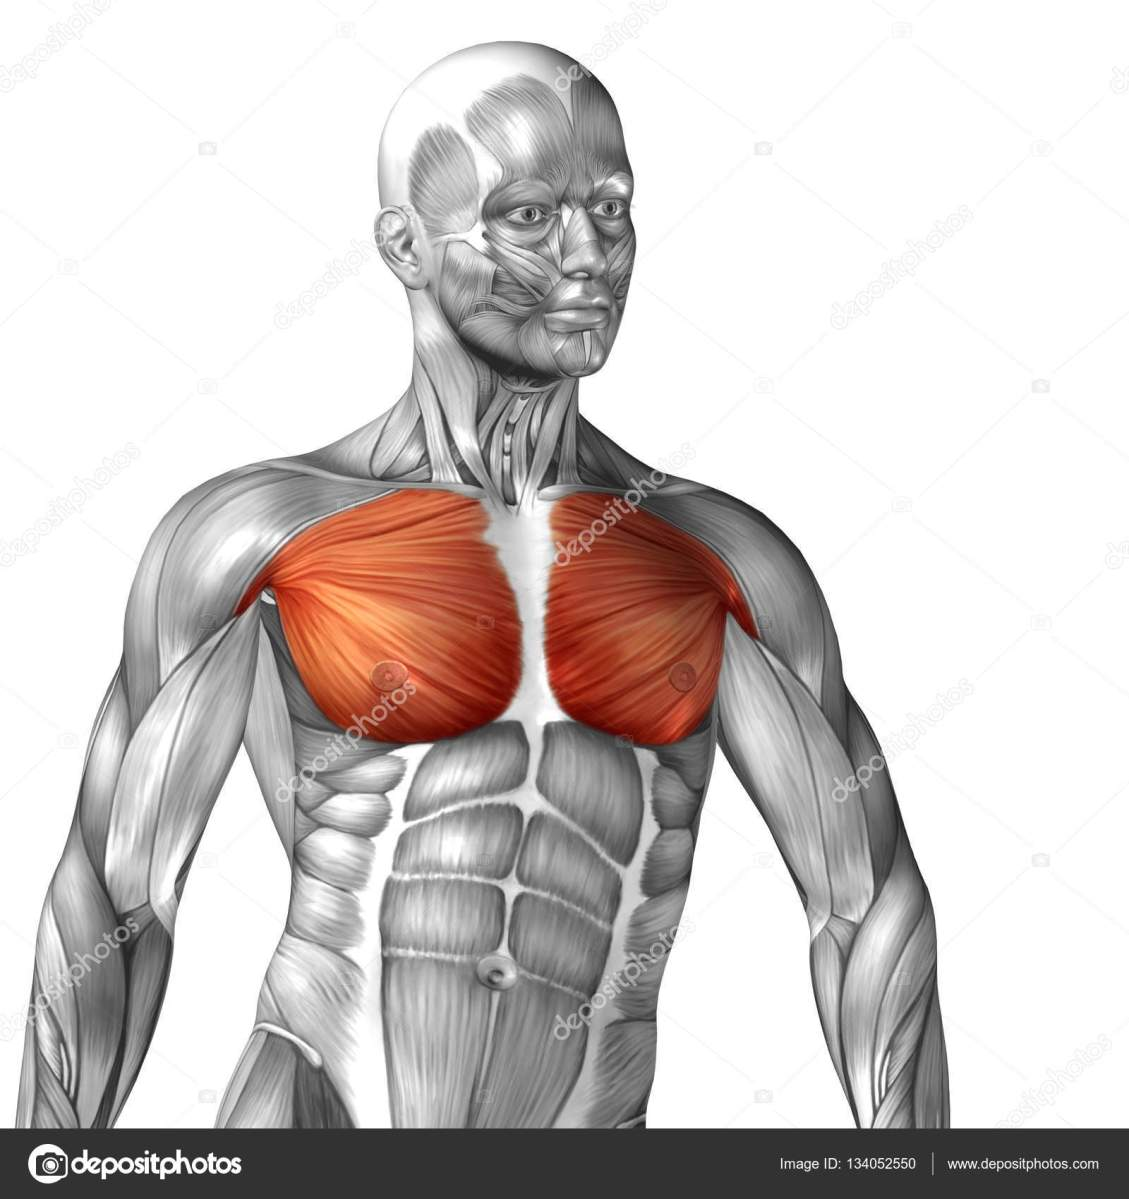 The Best Chest Workouts To Maximize Your Muscles